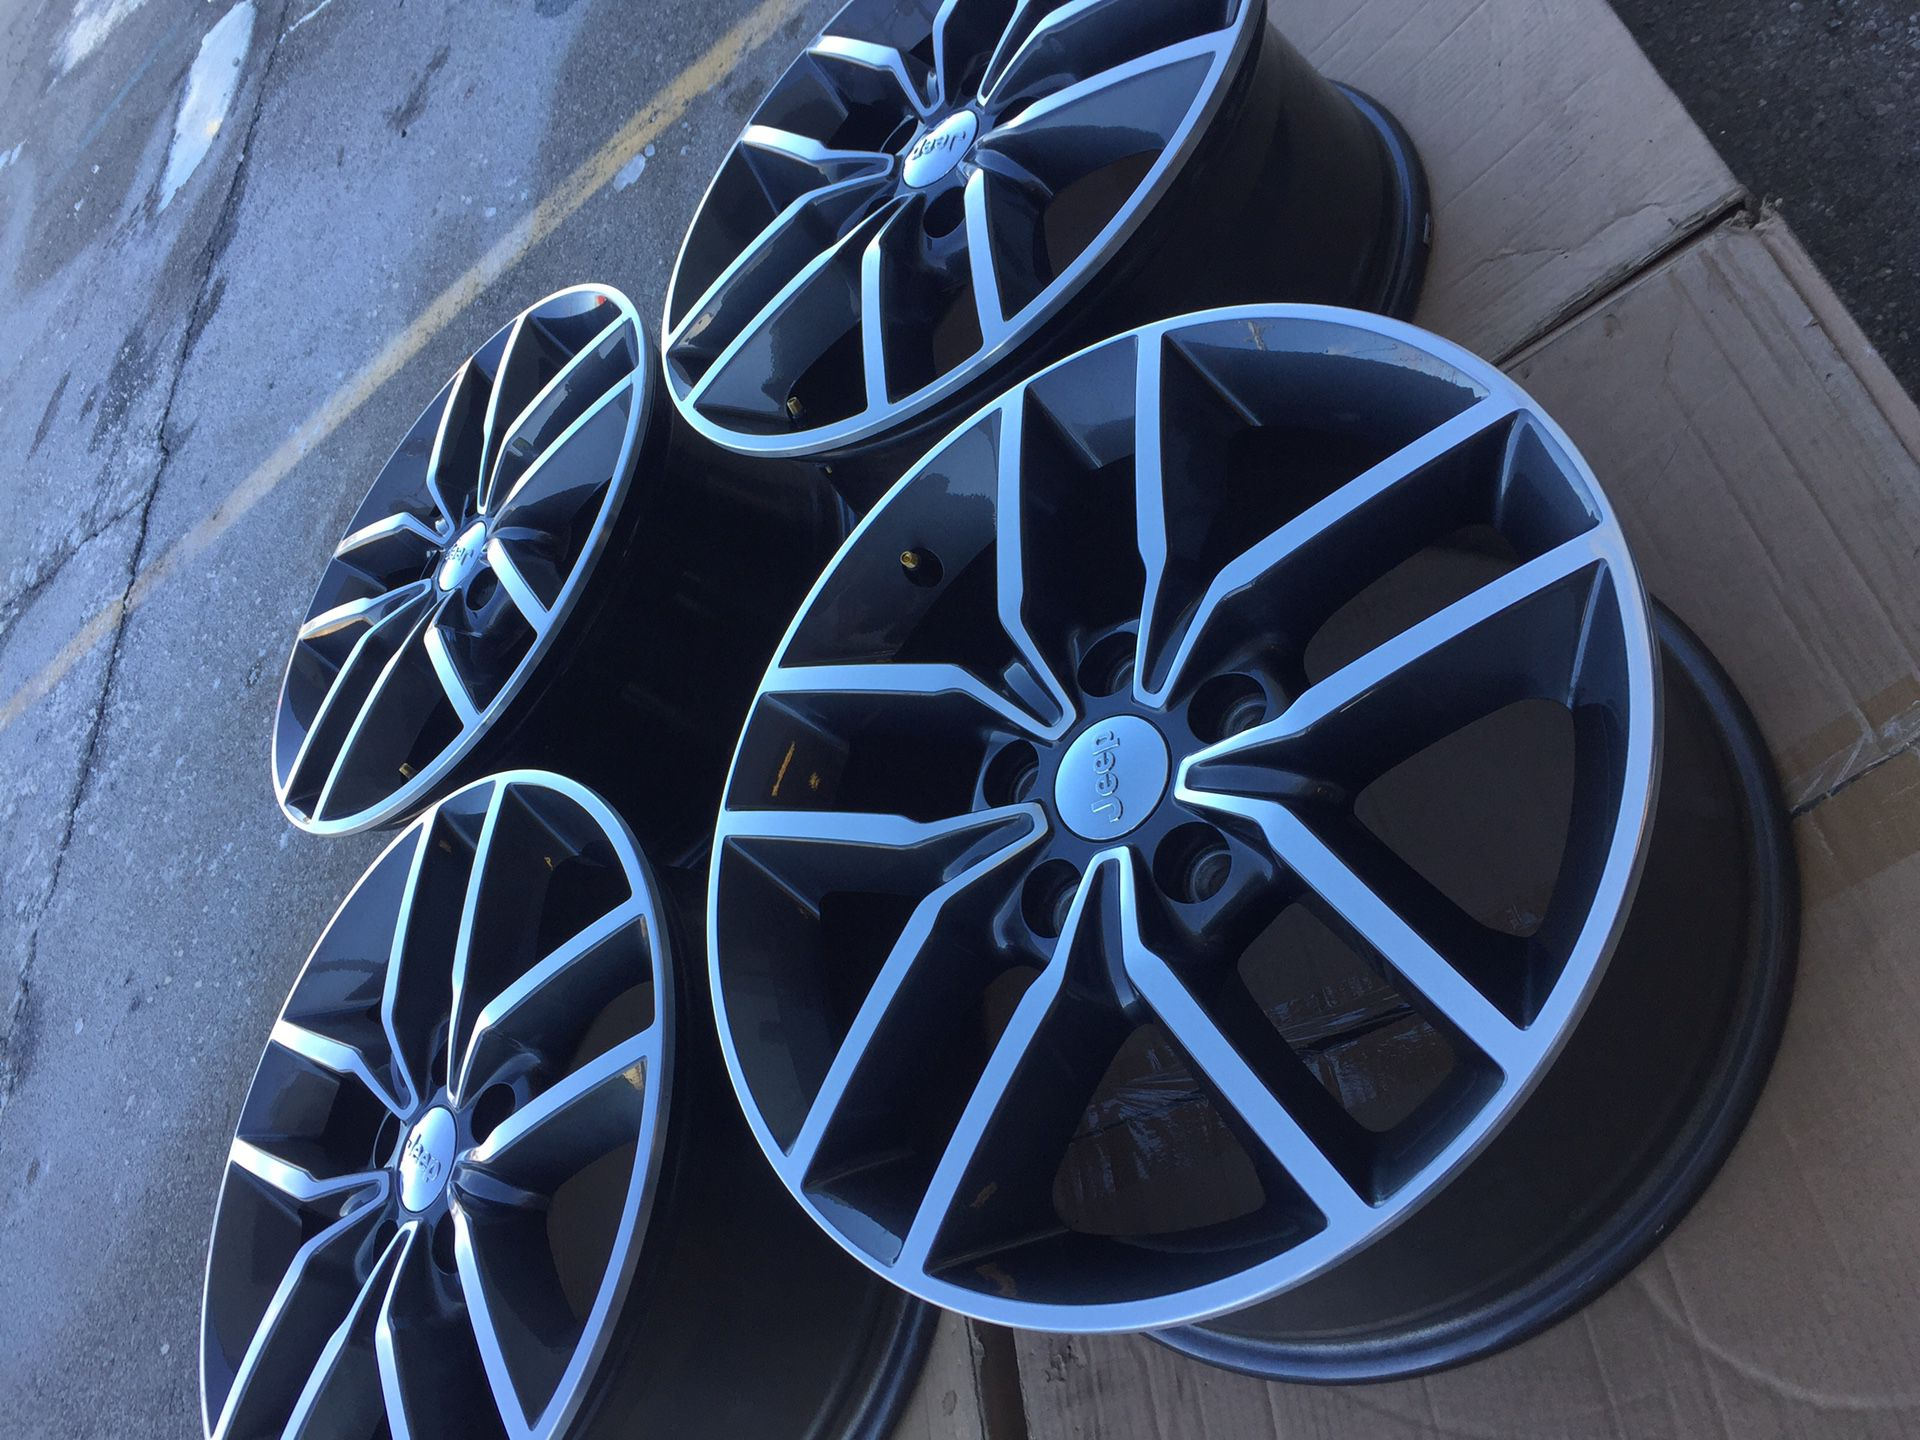 Rims tires new used all sizes wheels 14 15 16 17 18 19 20 22 24 26